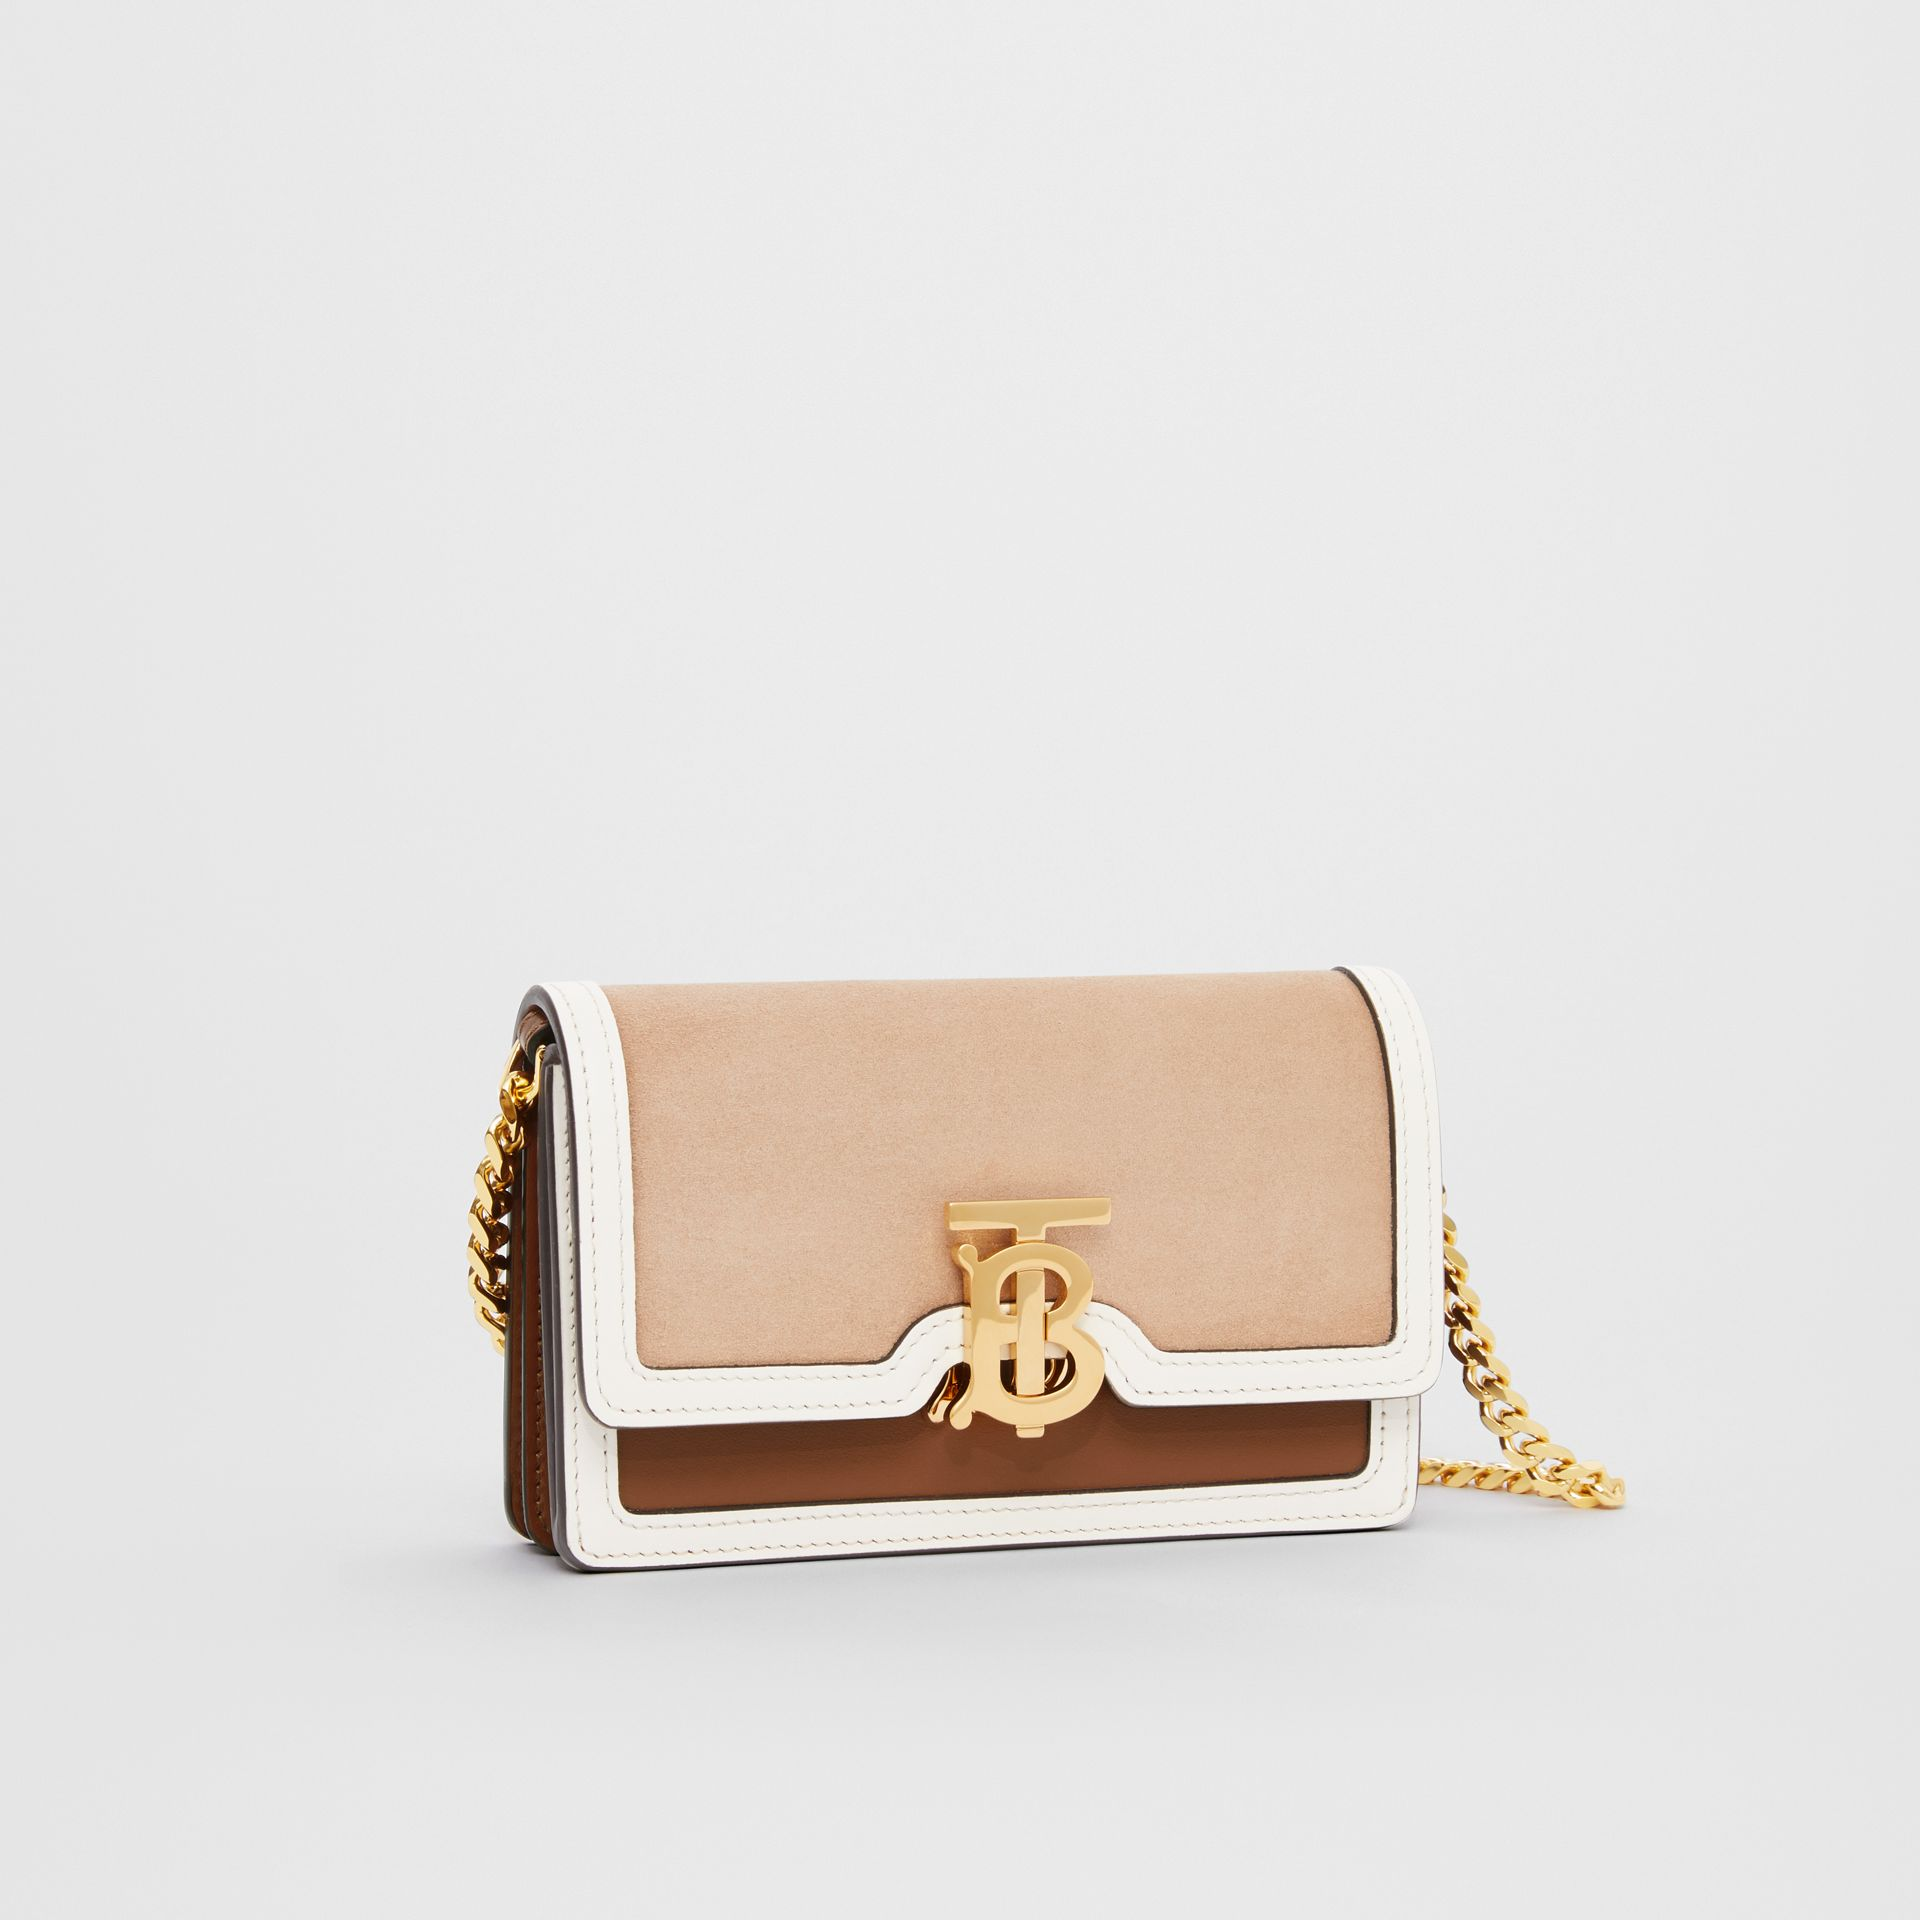 Mini Suede and Two-tone Leather Shoulder Bag in Biscuit - Women | Burberry - gallery image 4